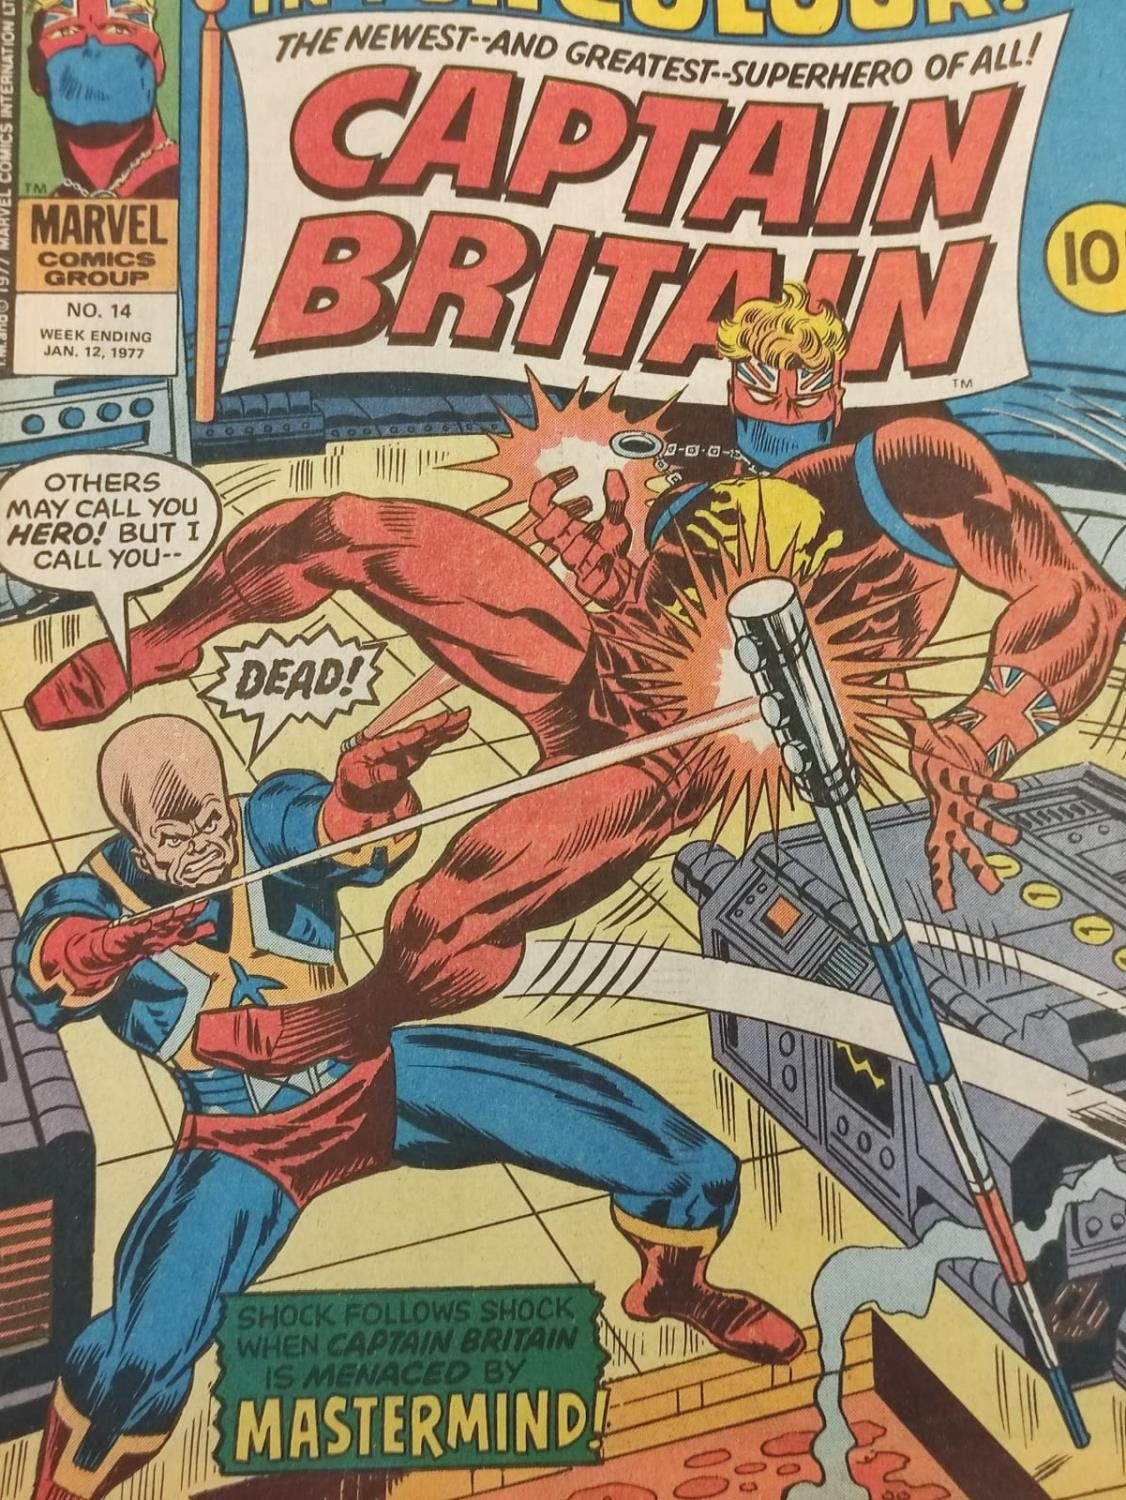 20 editions of mixed Vintage Marvel Comics. - Image 9 of 56